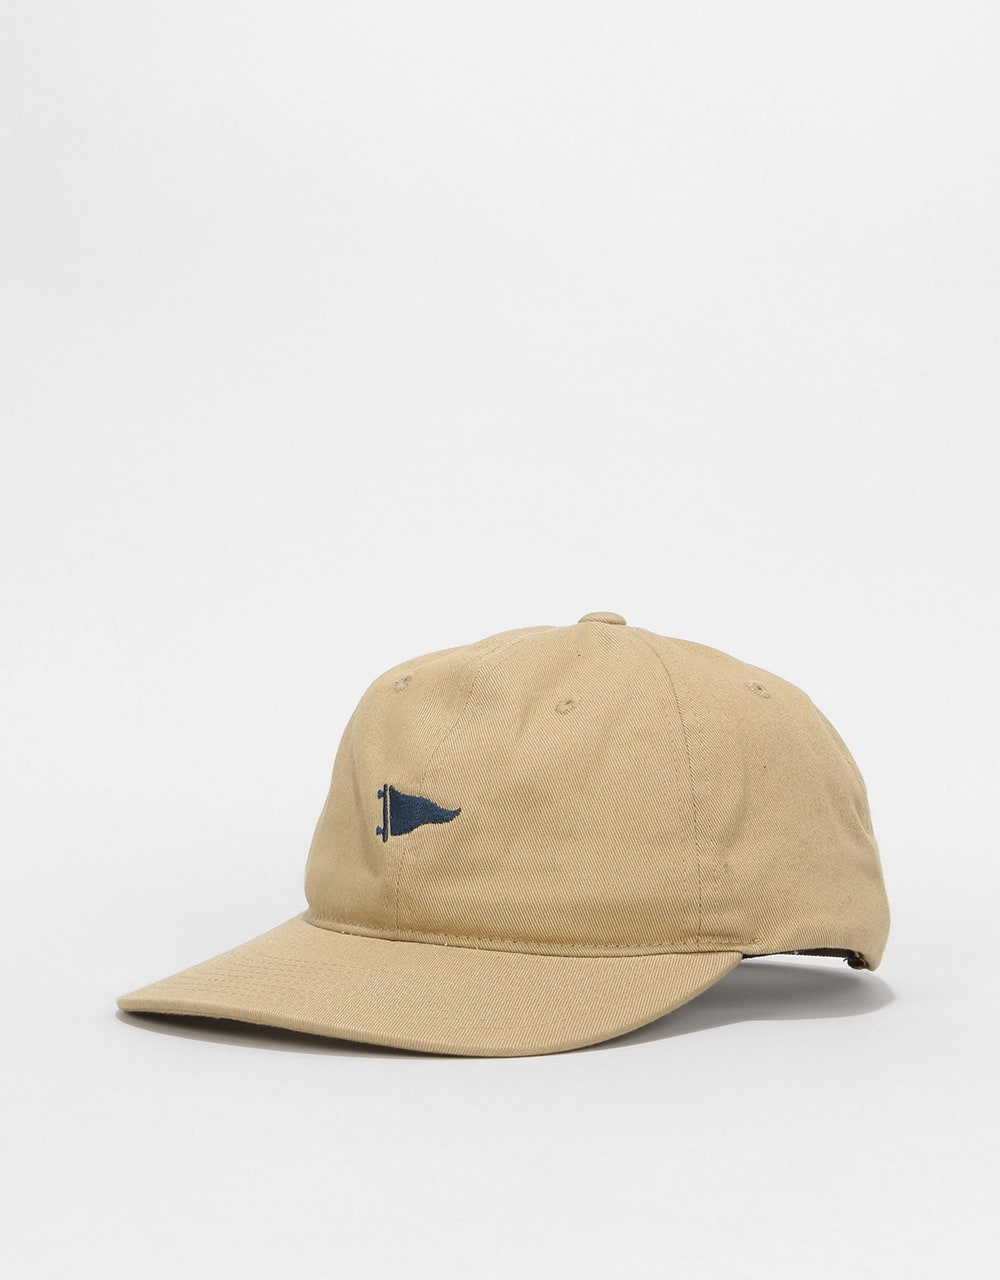 Primitive Knockout Dad Cap - Khaki  48a84c526826